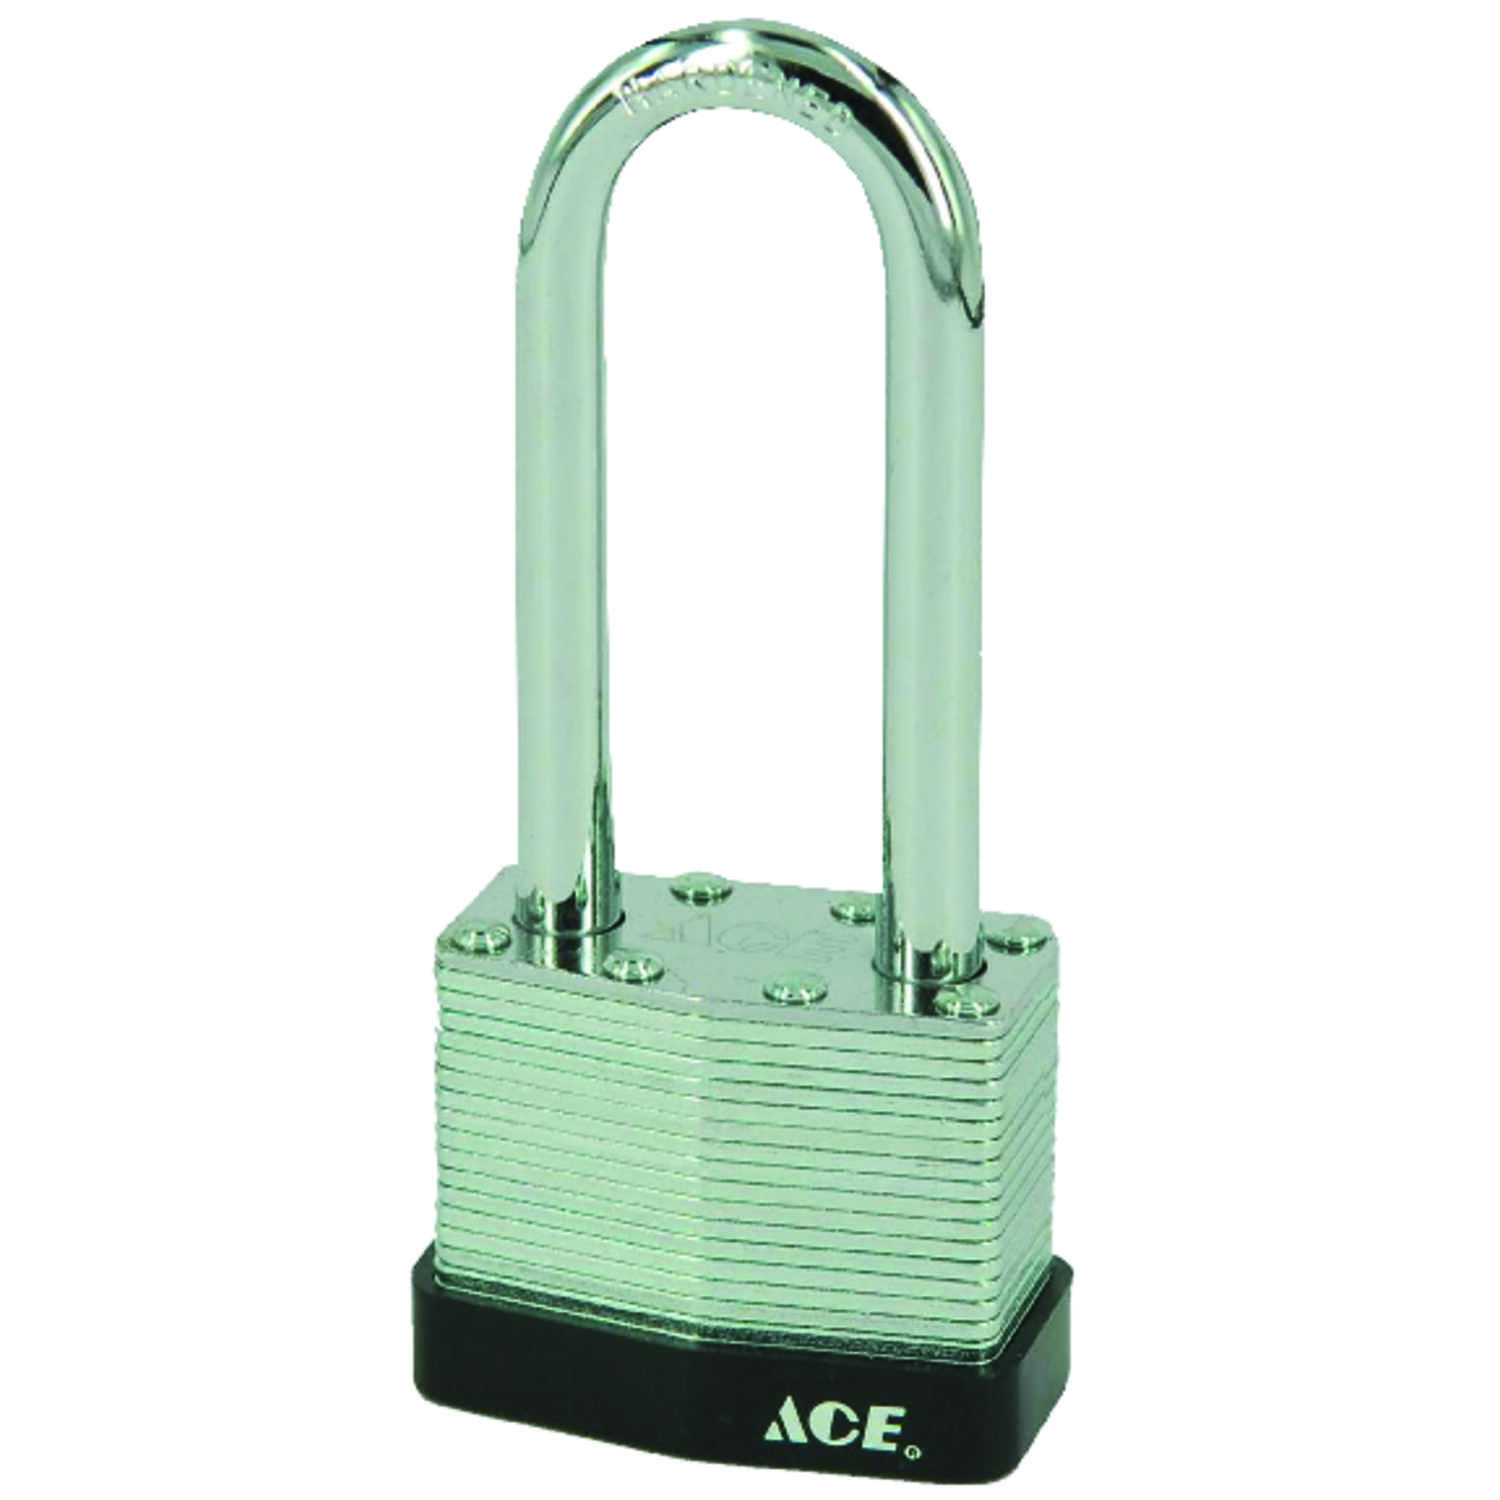 Ace  1-5/16 in. H x 1-9/16 in. W Steel  Double Locking  Padlock  1 pk